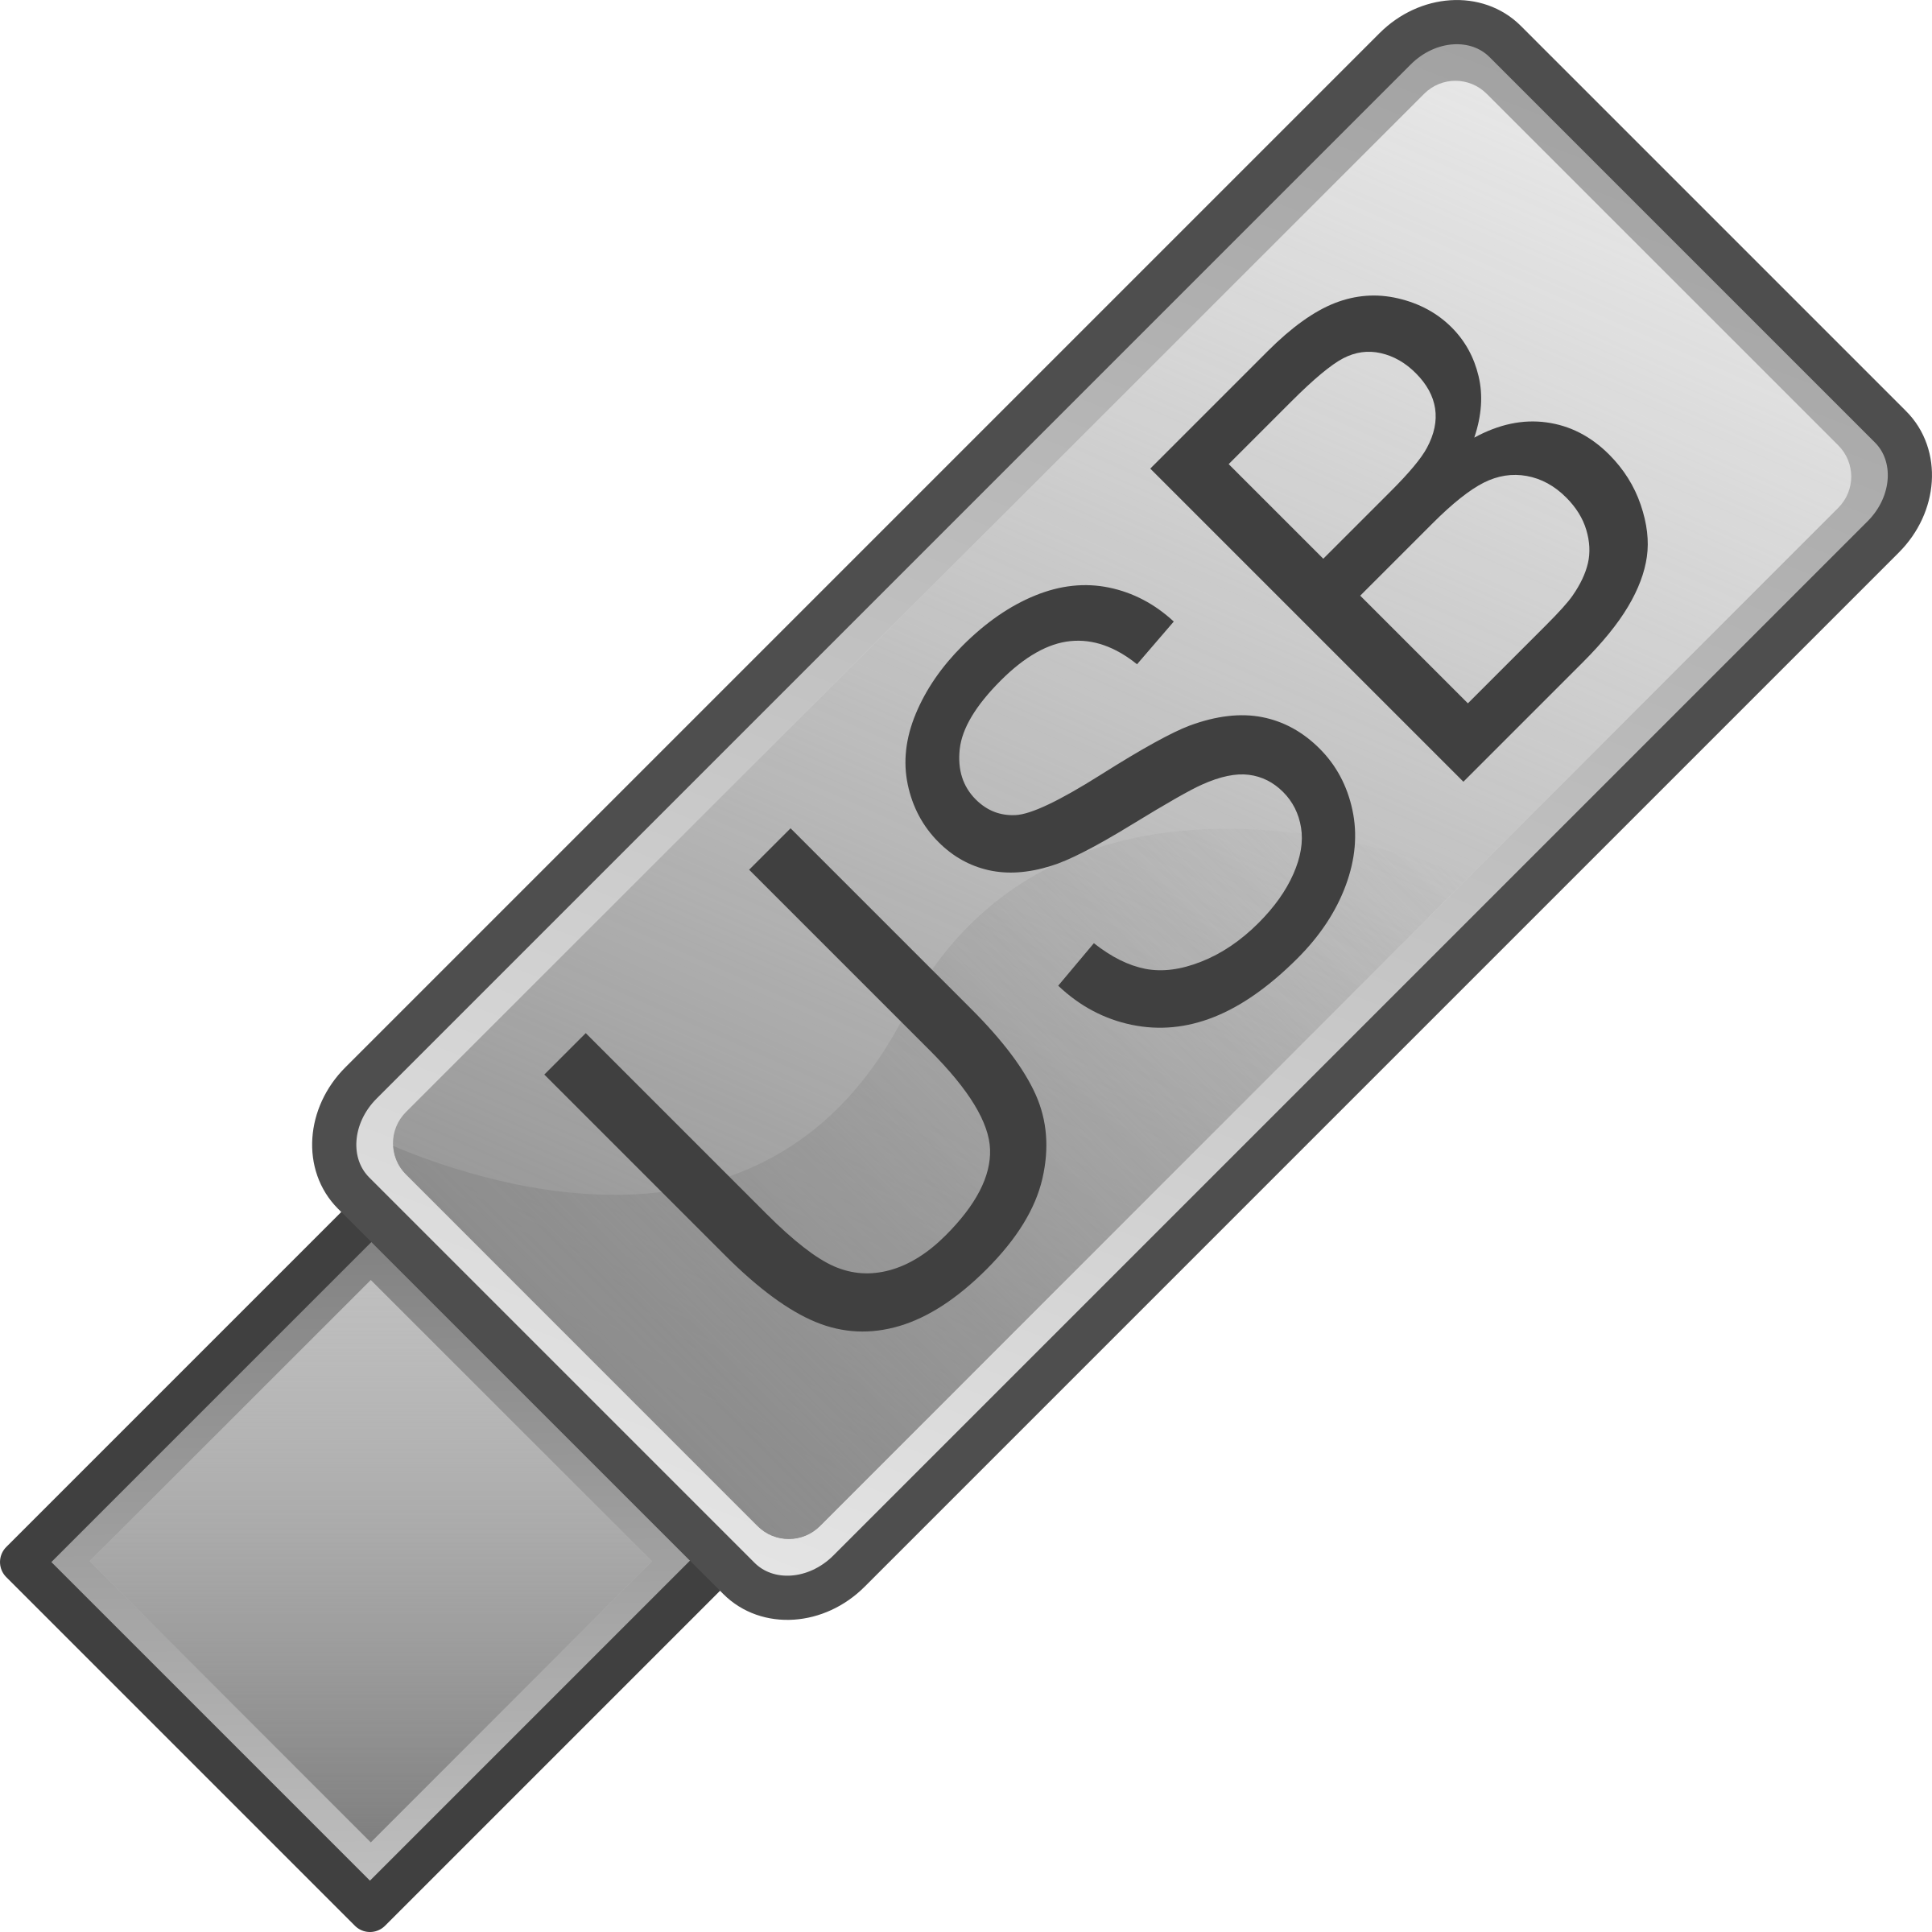 USB Flash Drive Icon by _TyIzaeL_